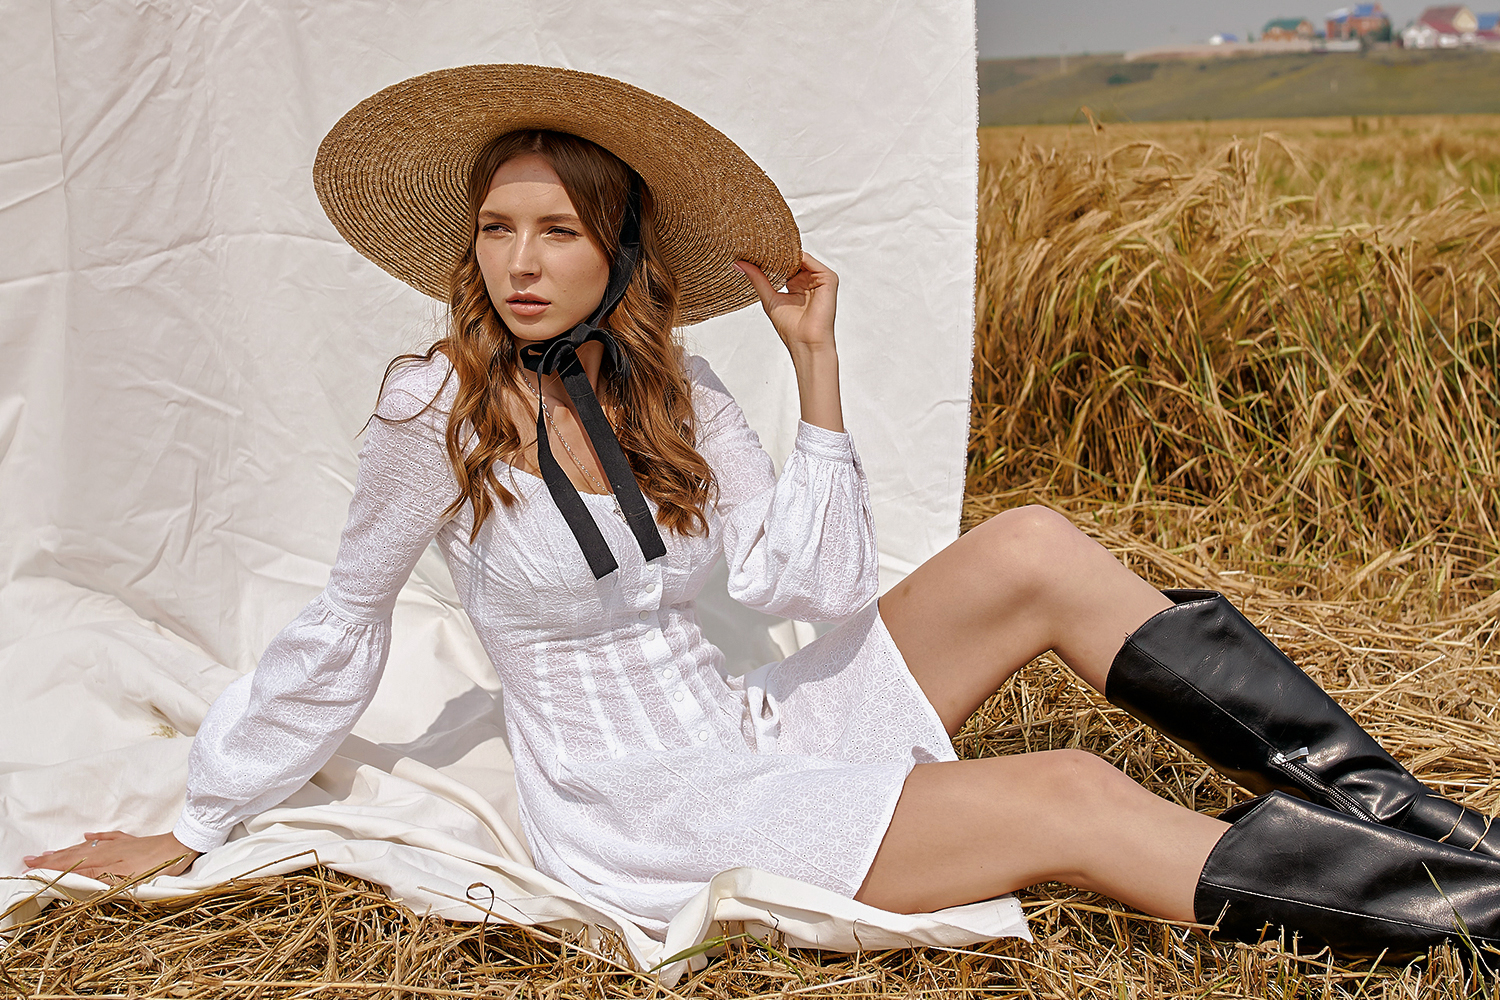 young woman in knee-lenght boots and short dresss is posing in the field